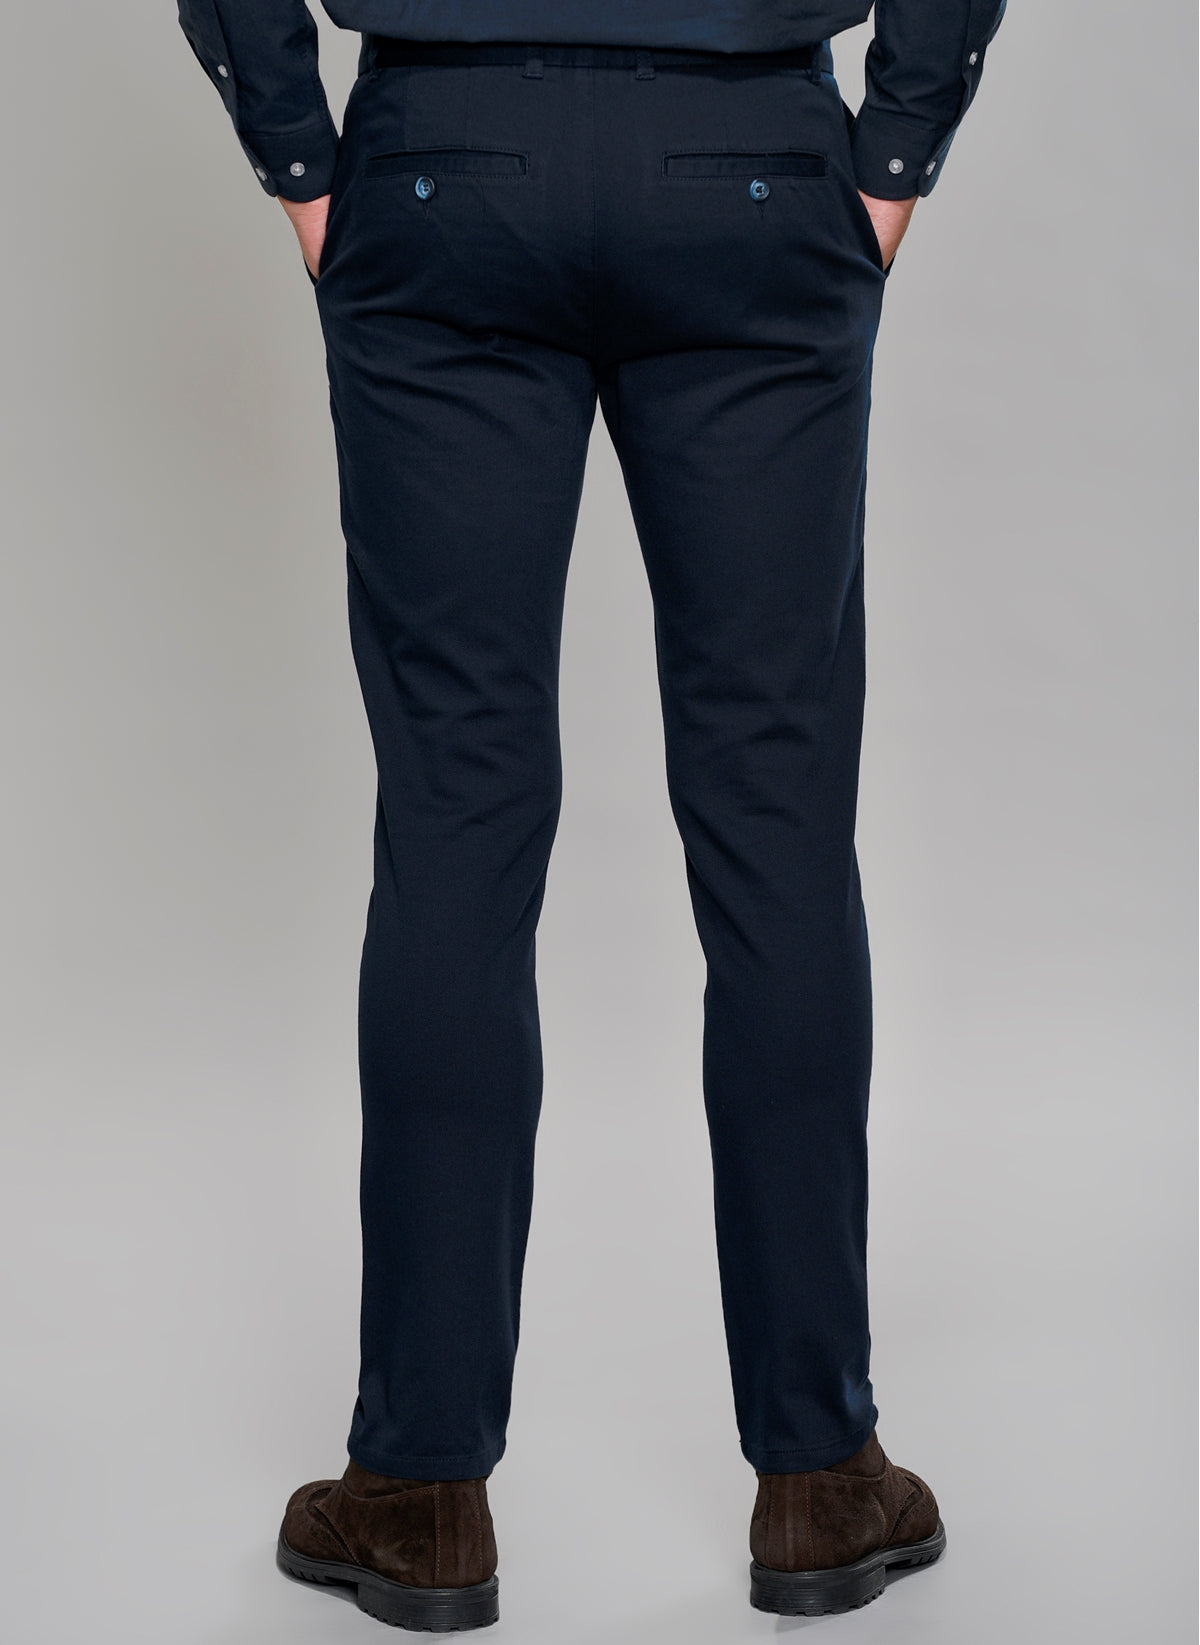 Slim Fit Chino Pants in Navy